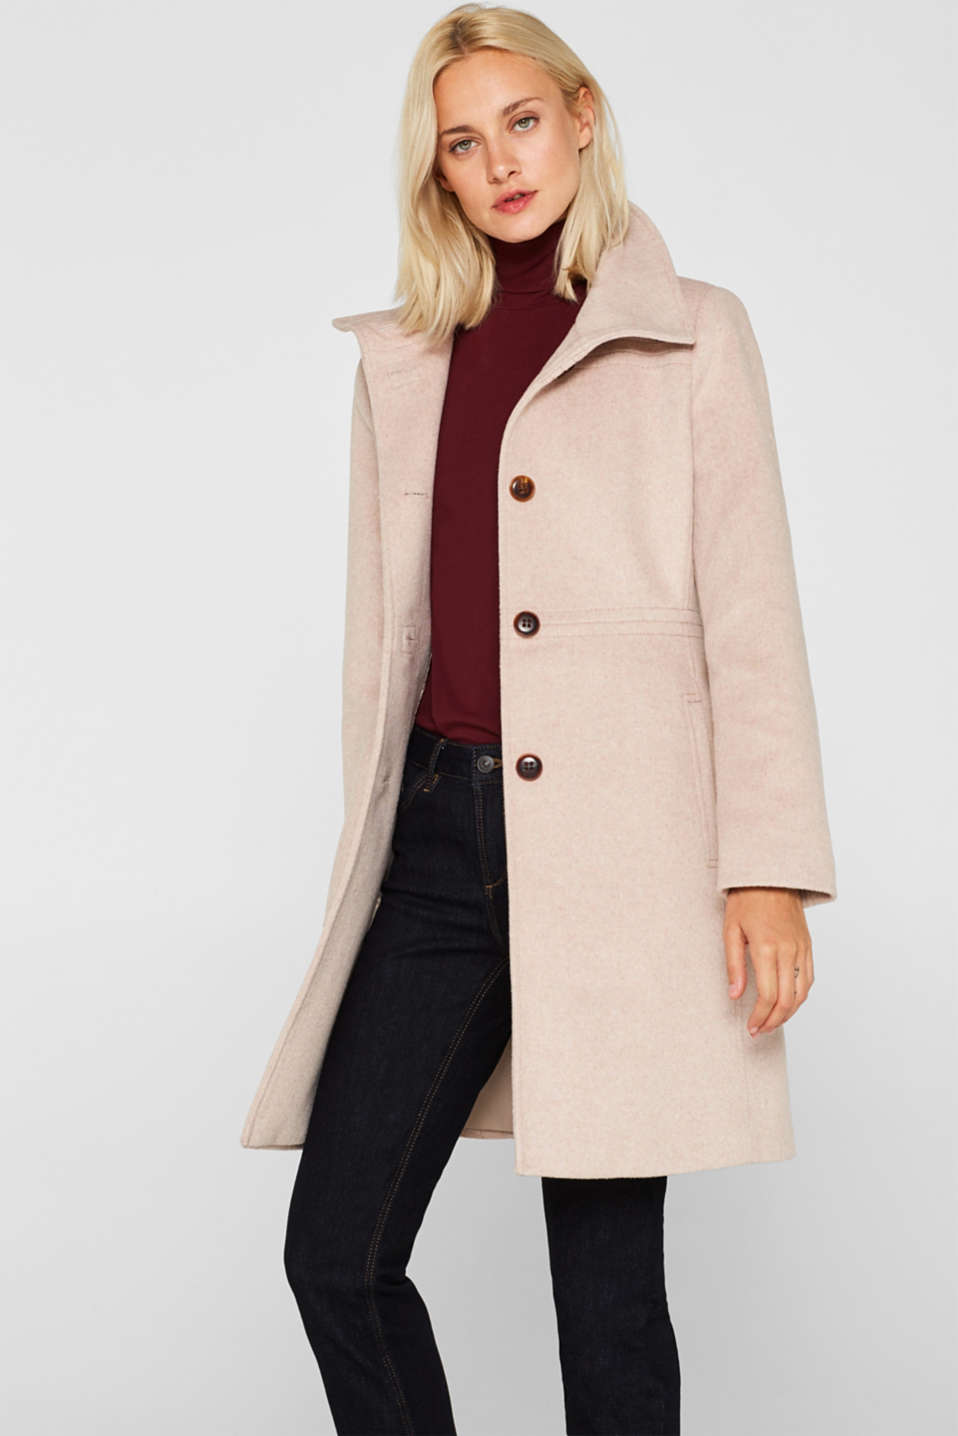 Esprit - Made of blended wool: Coat with an adjustable collar